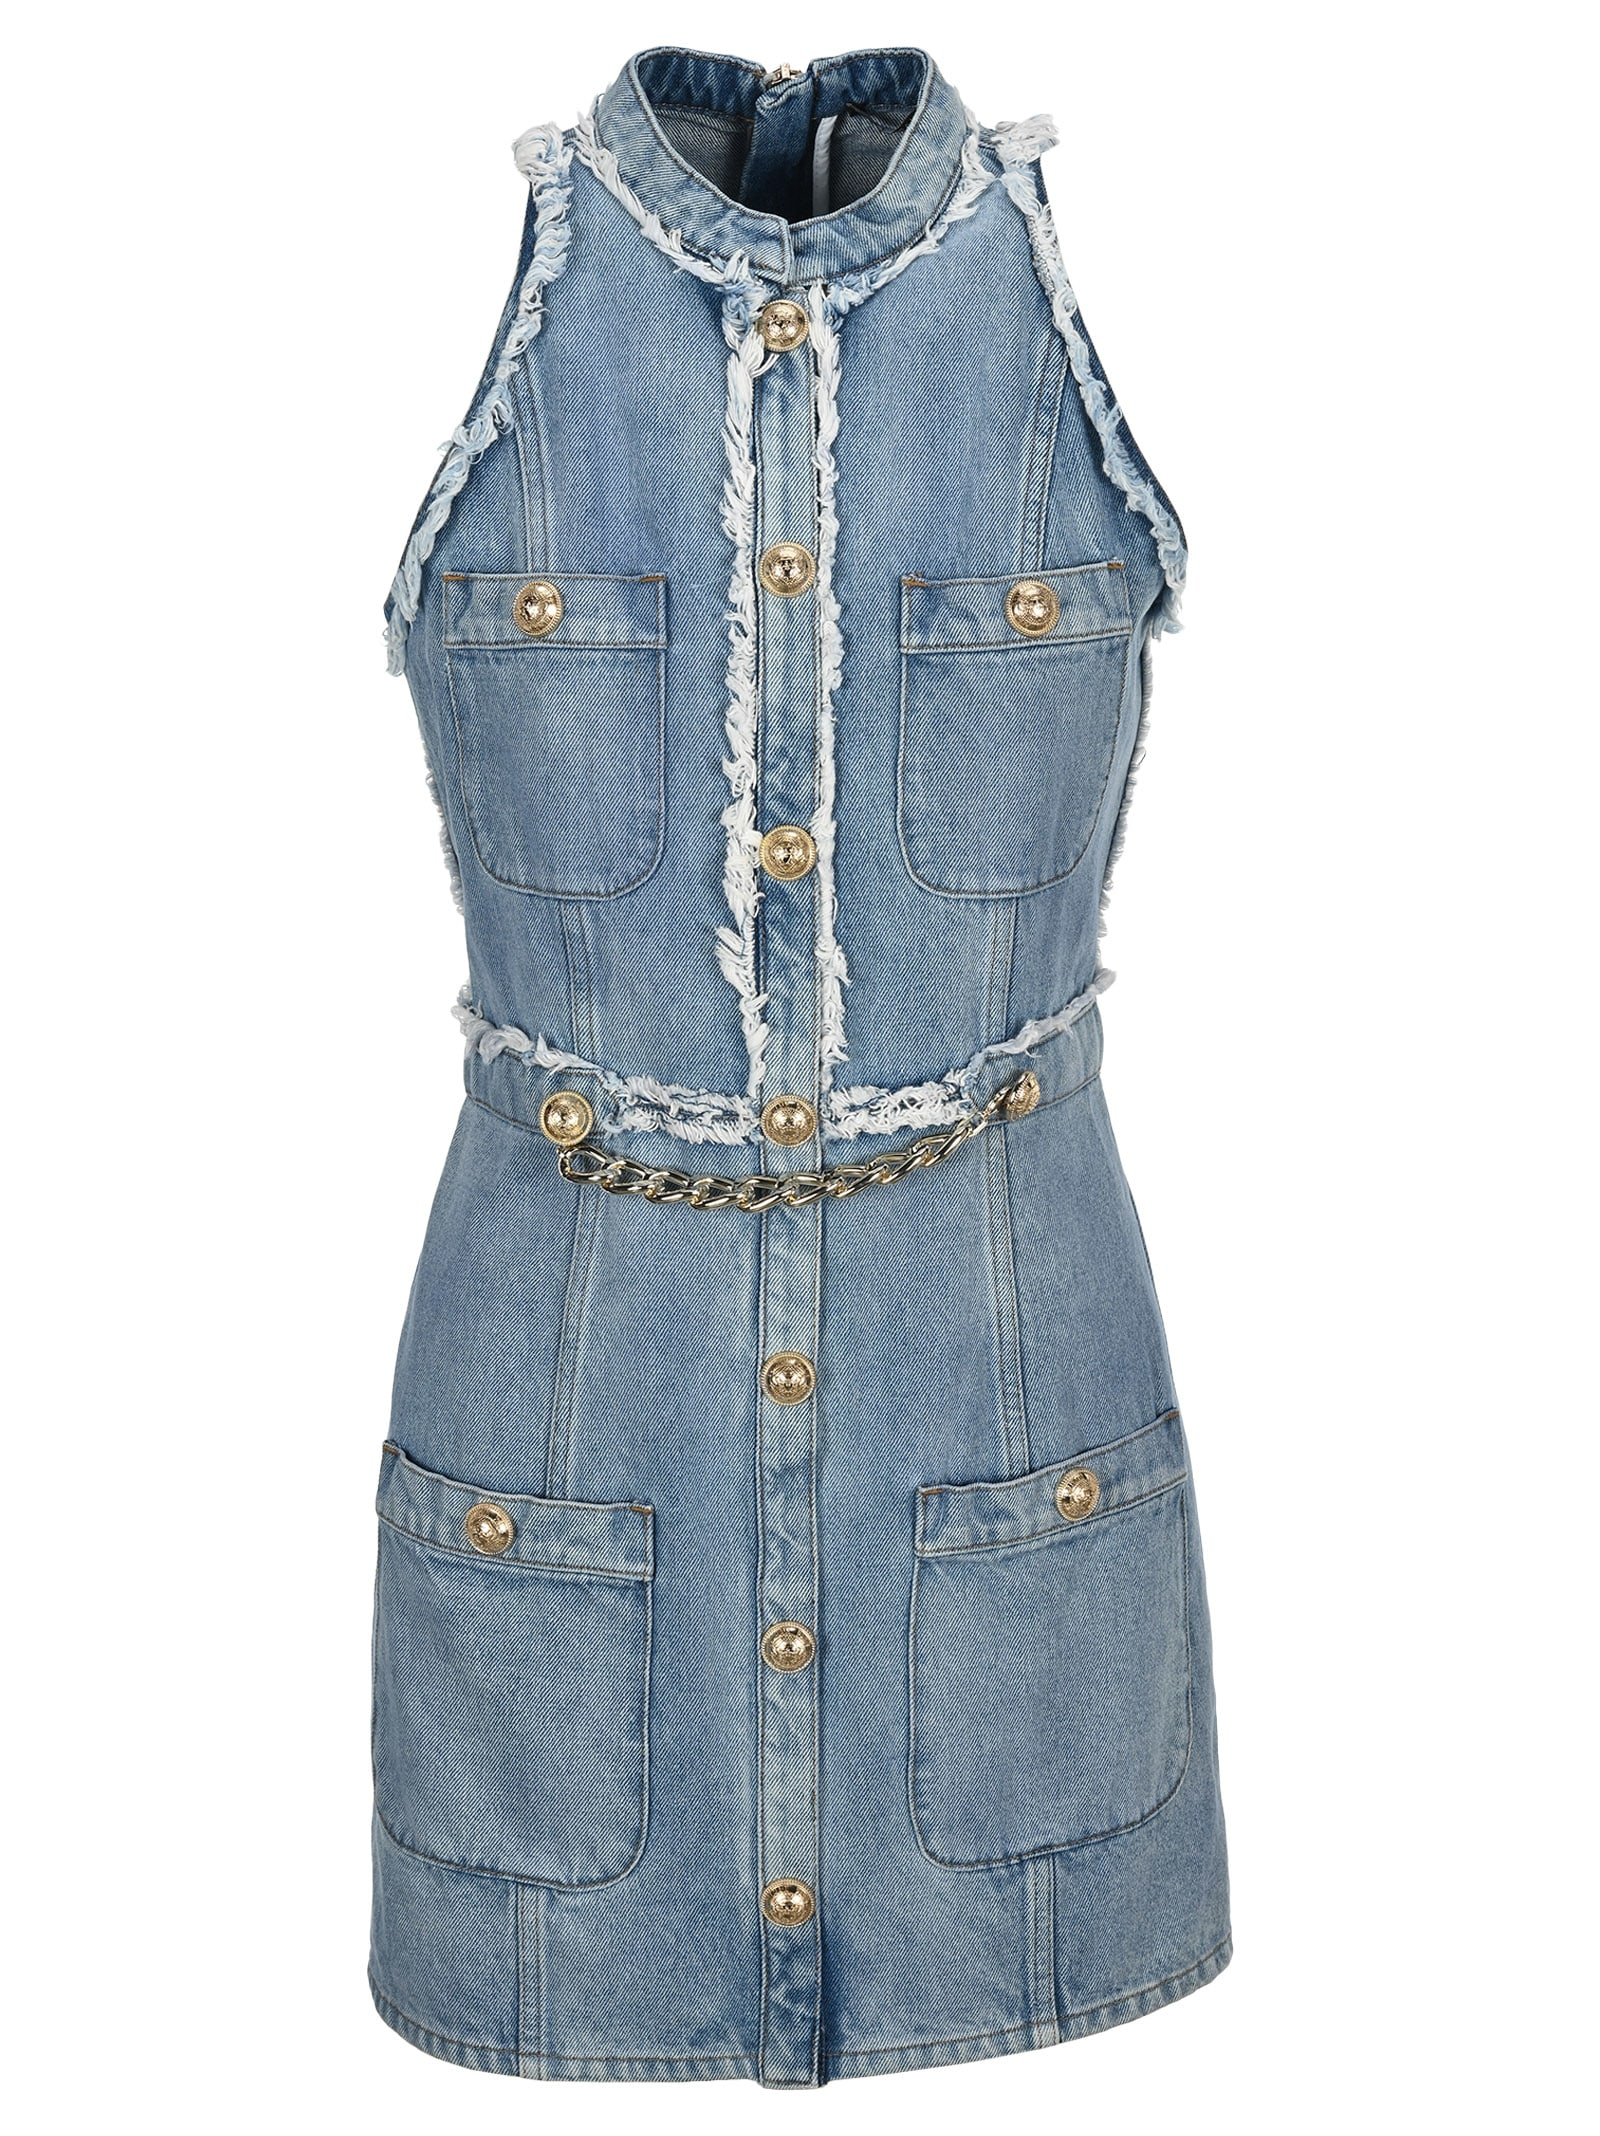 Buy Balmain Chain Embellished Denim Dress online, shop Balmain with free shipping